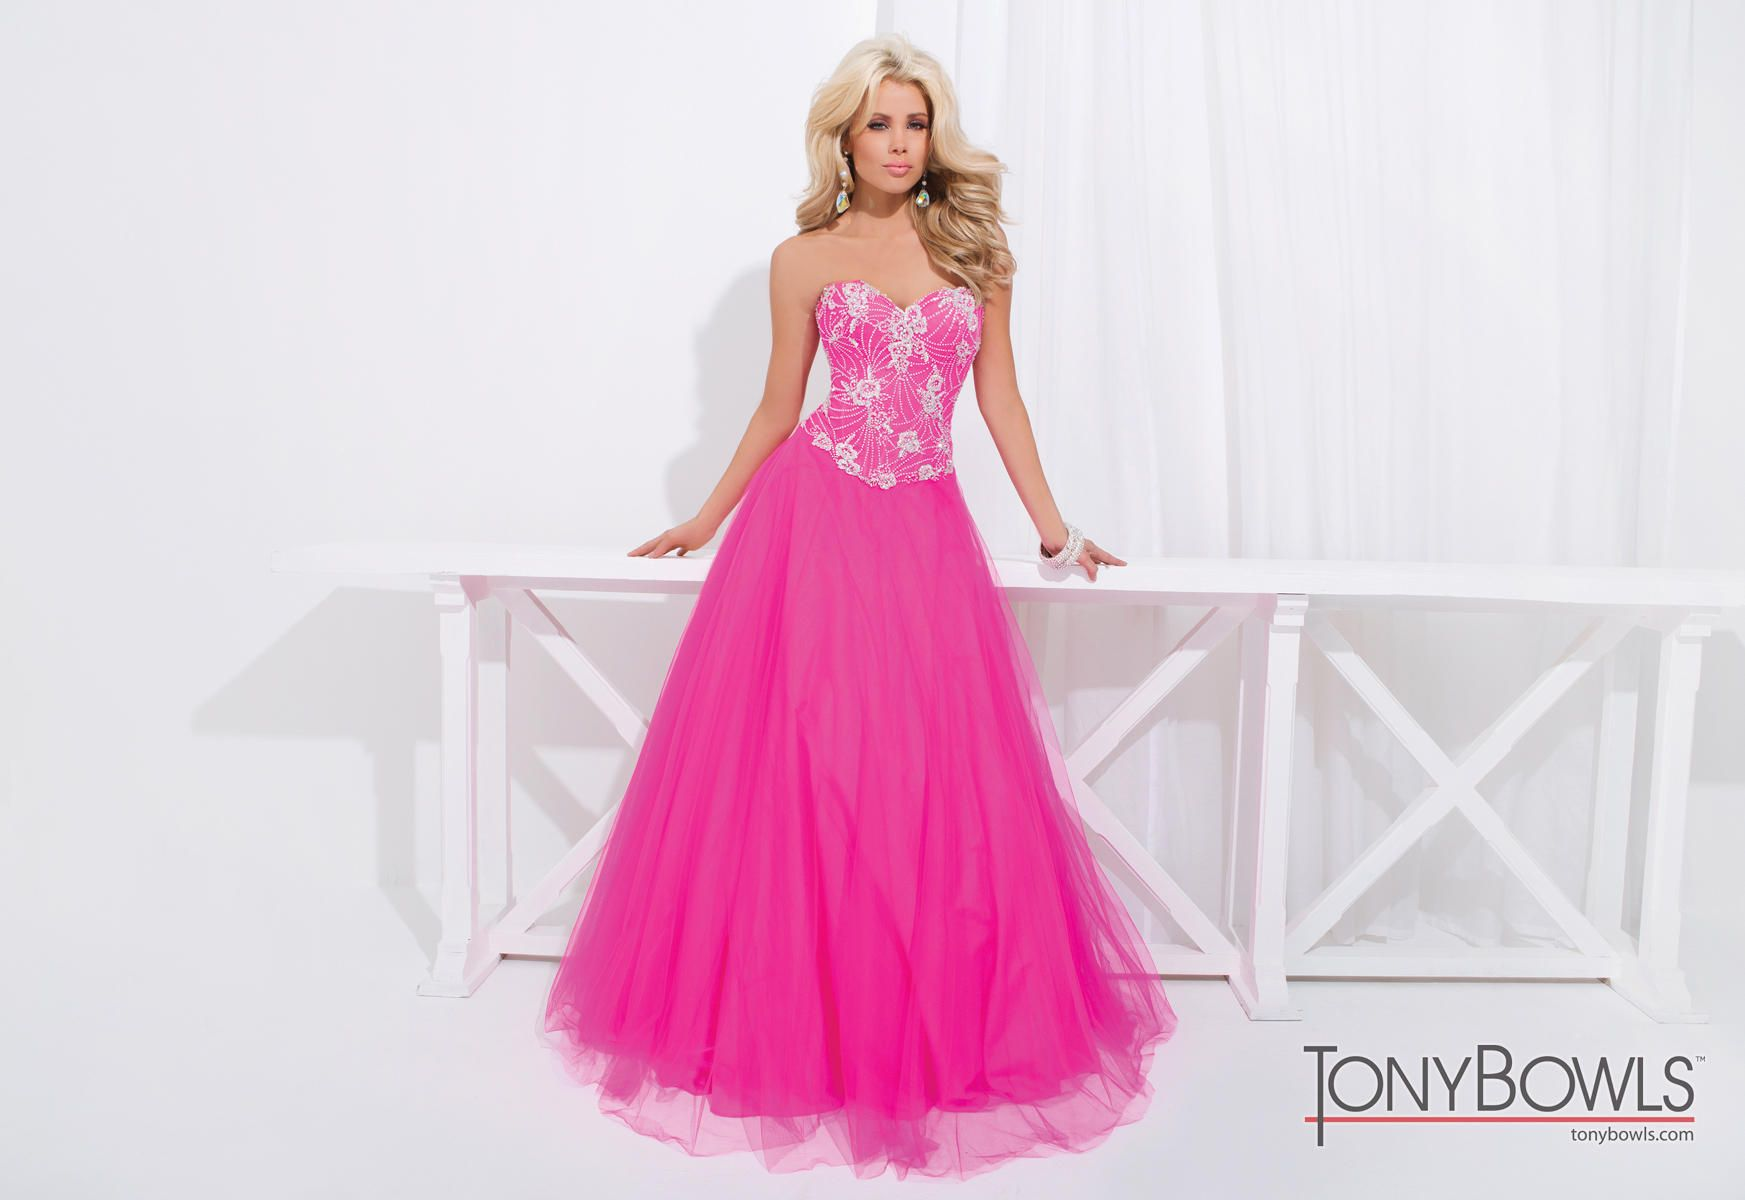 Tony Bowls Le Gala 114532 Tony Bowls Le Gala The Prom Shop - Prom Dresses in the Rochester MN area